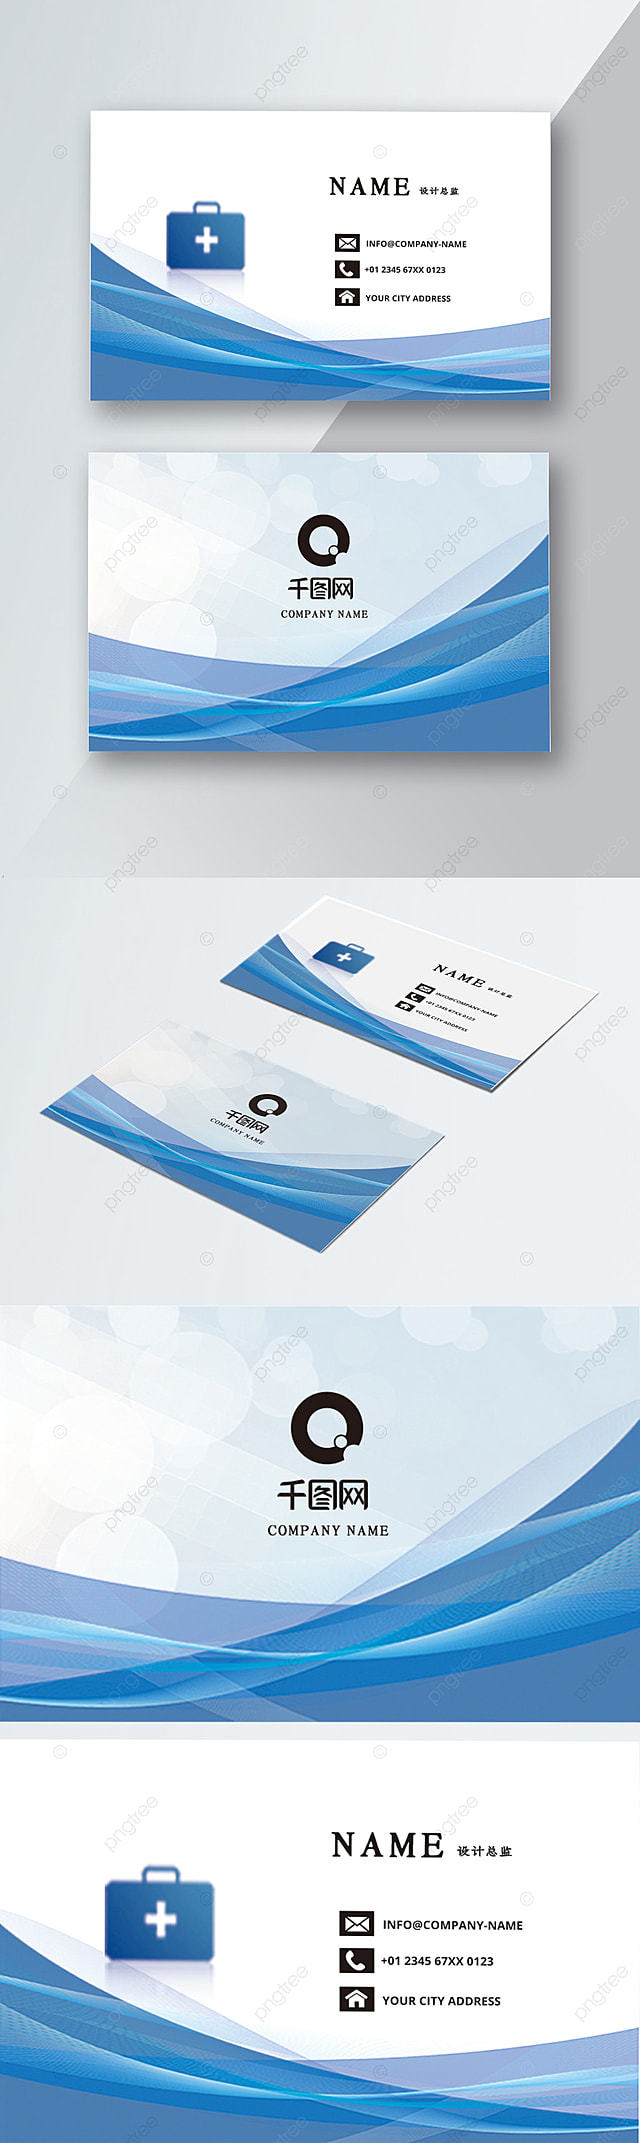 Hospital Business Card Special Treatment Business Card High End Business Card Simple And Generous Business Card Template Download On Pngtree